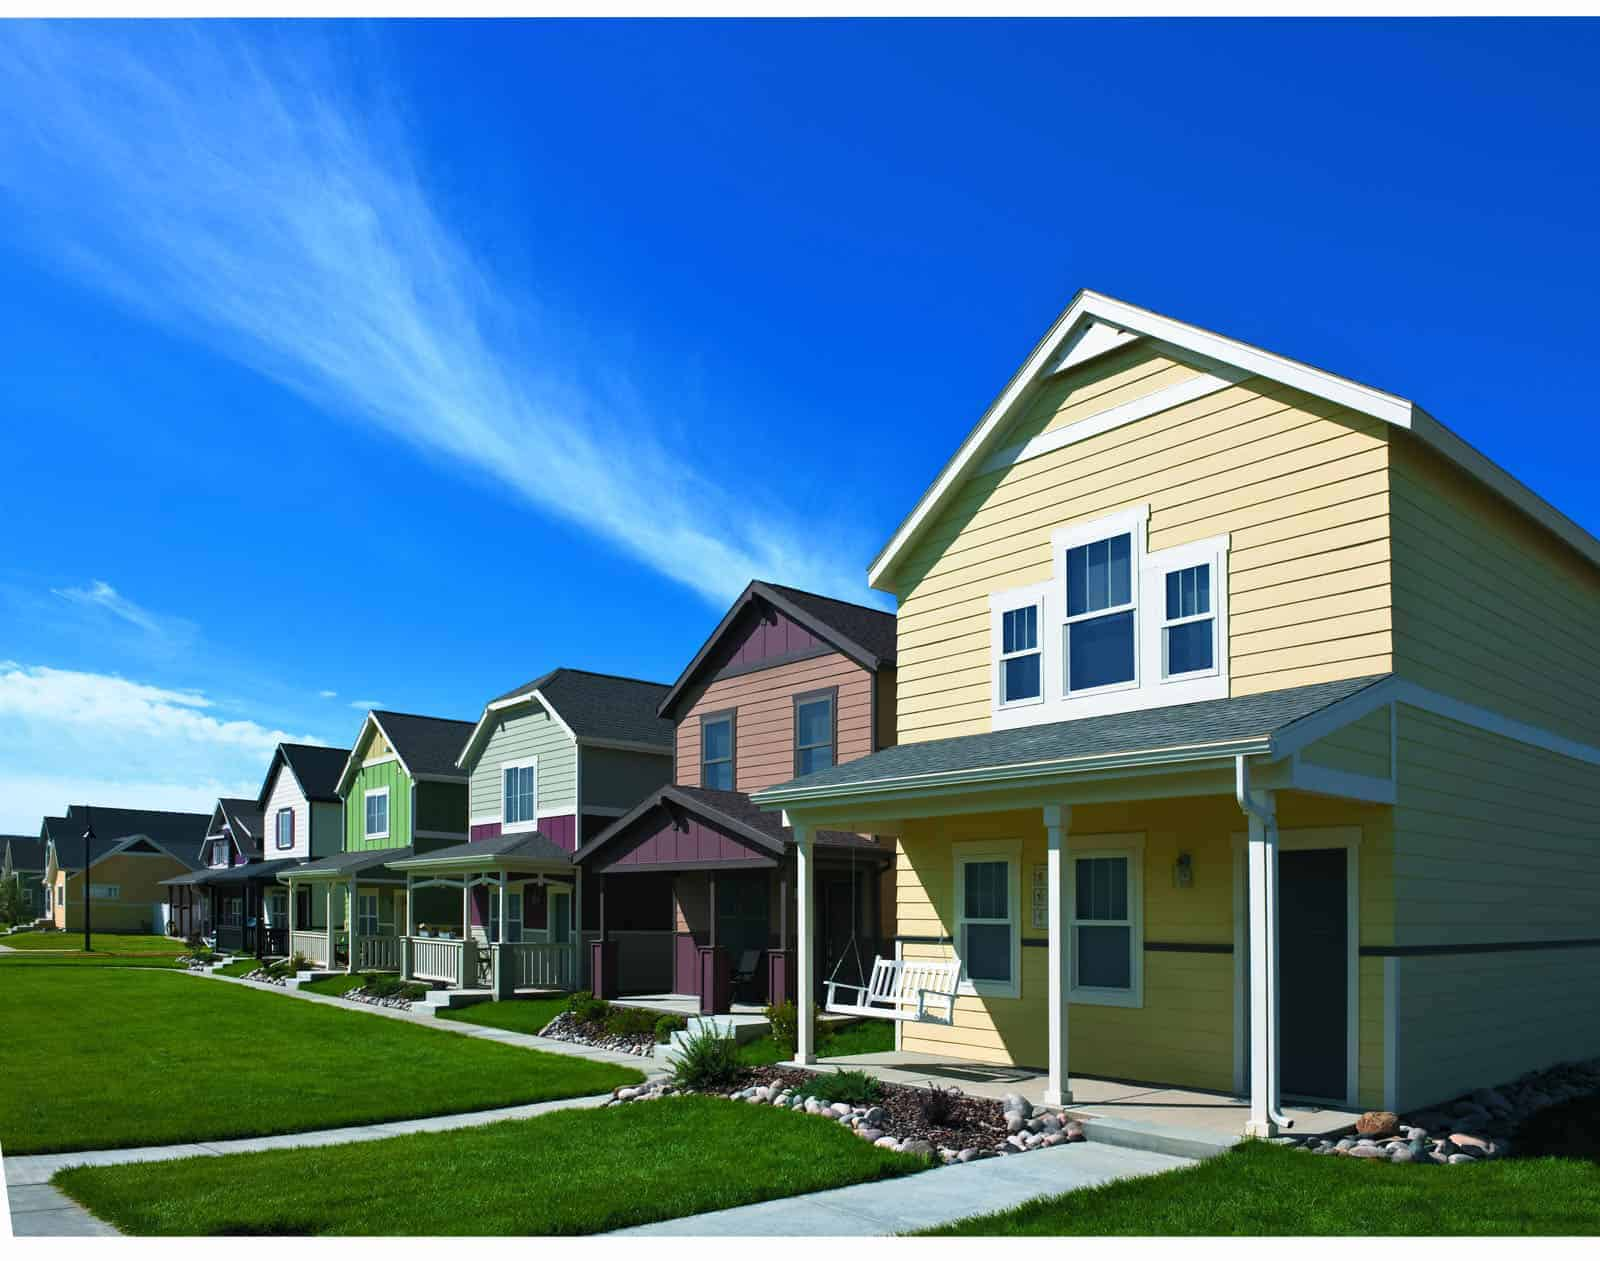 Row of colorful houses with fiberglass and composite windows